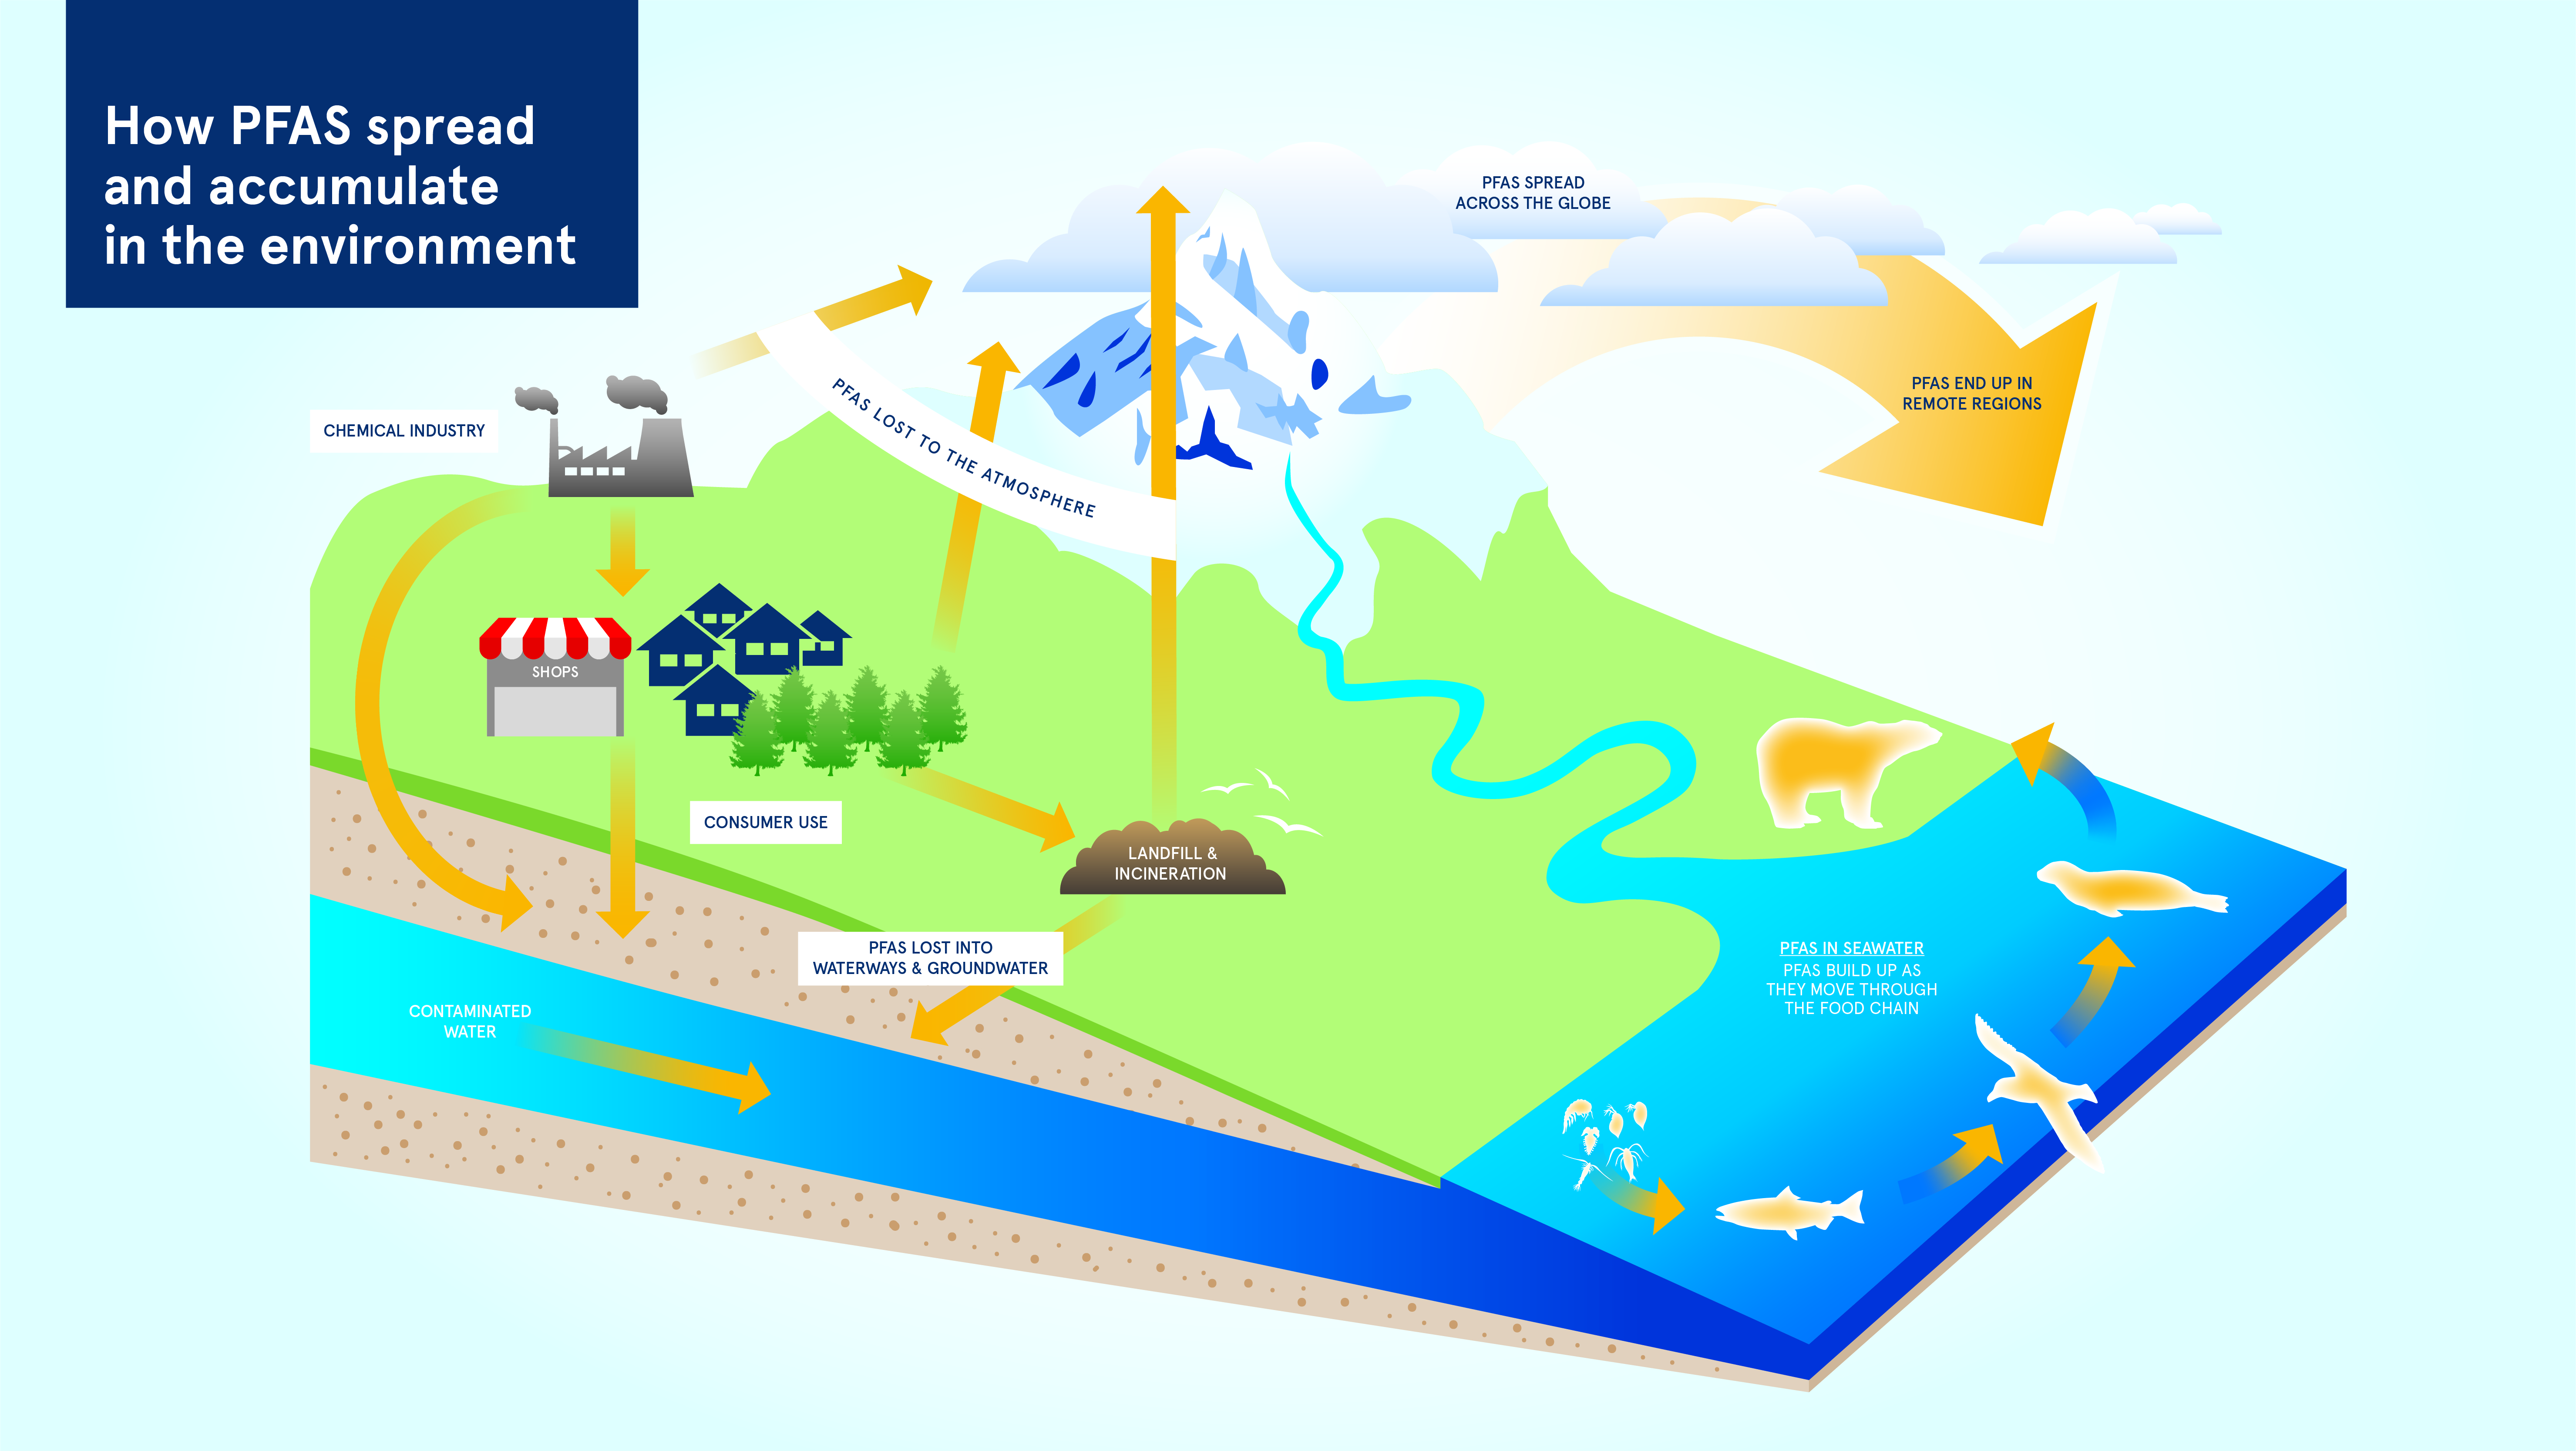 How PFAS spreads and builds up in the environment